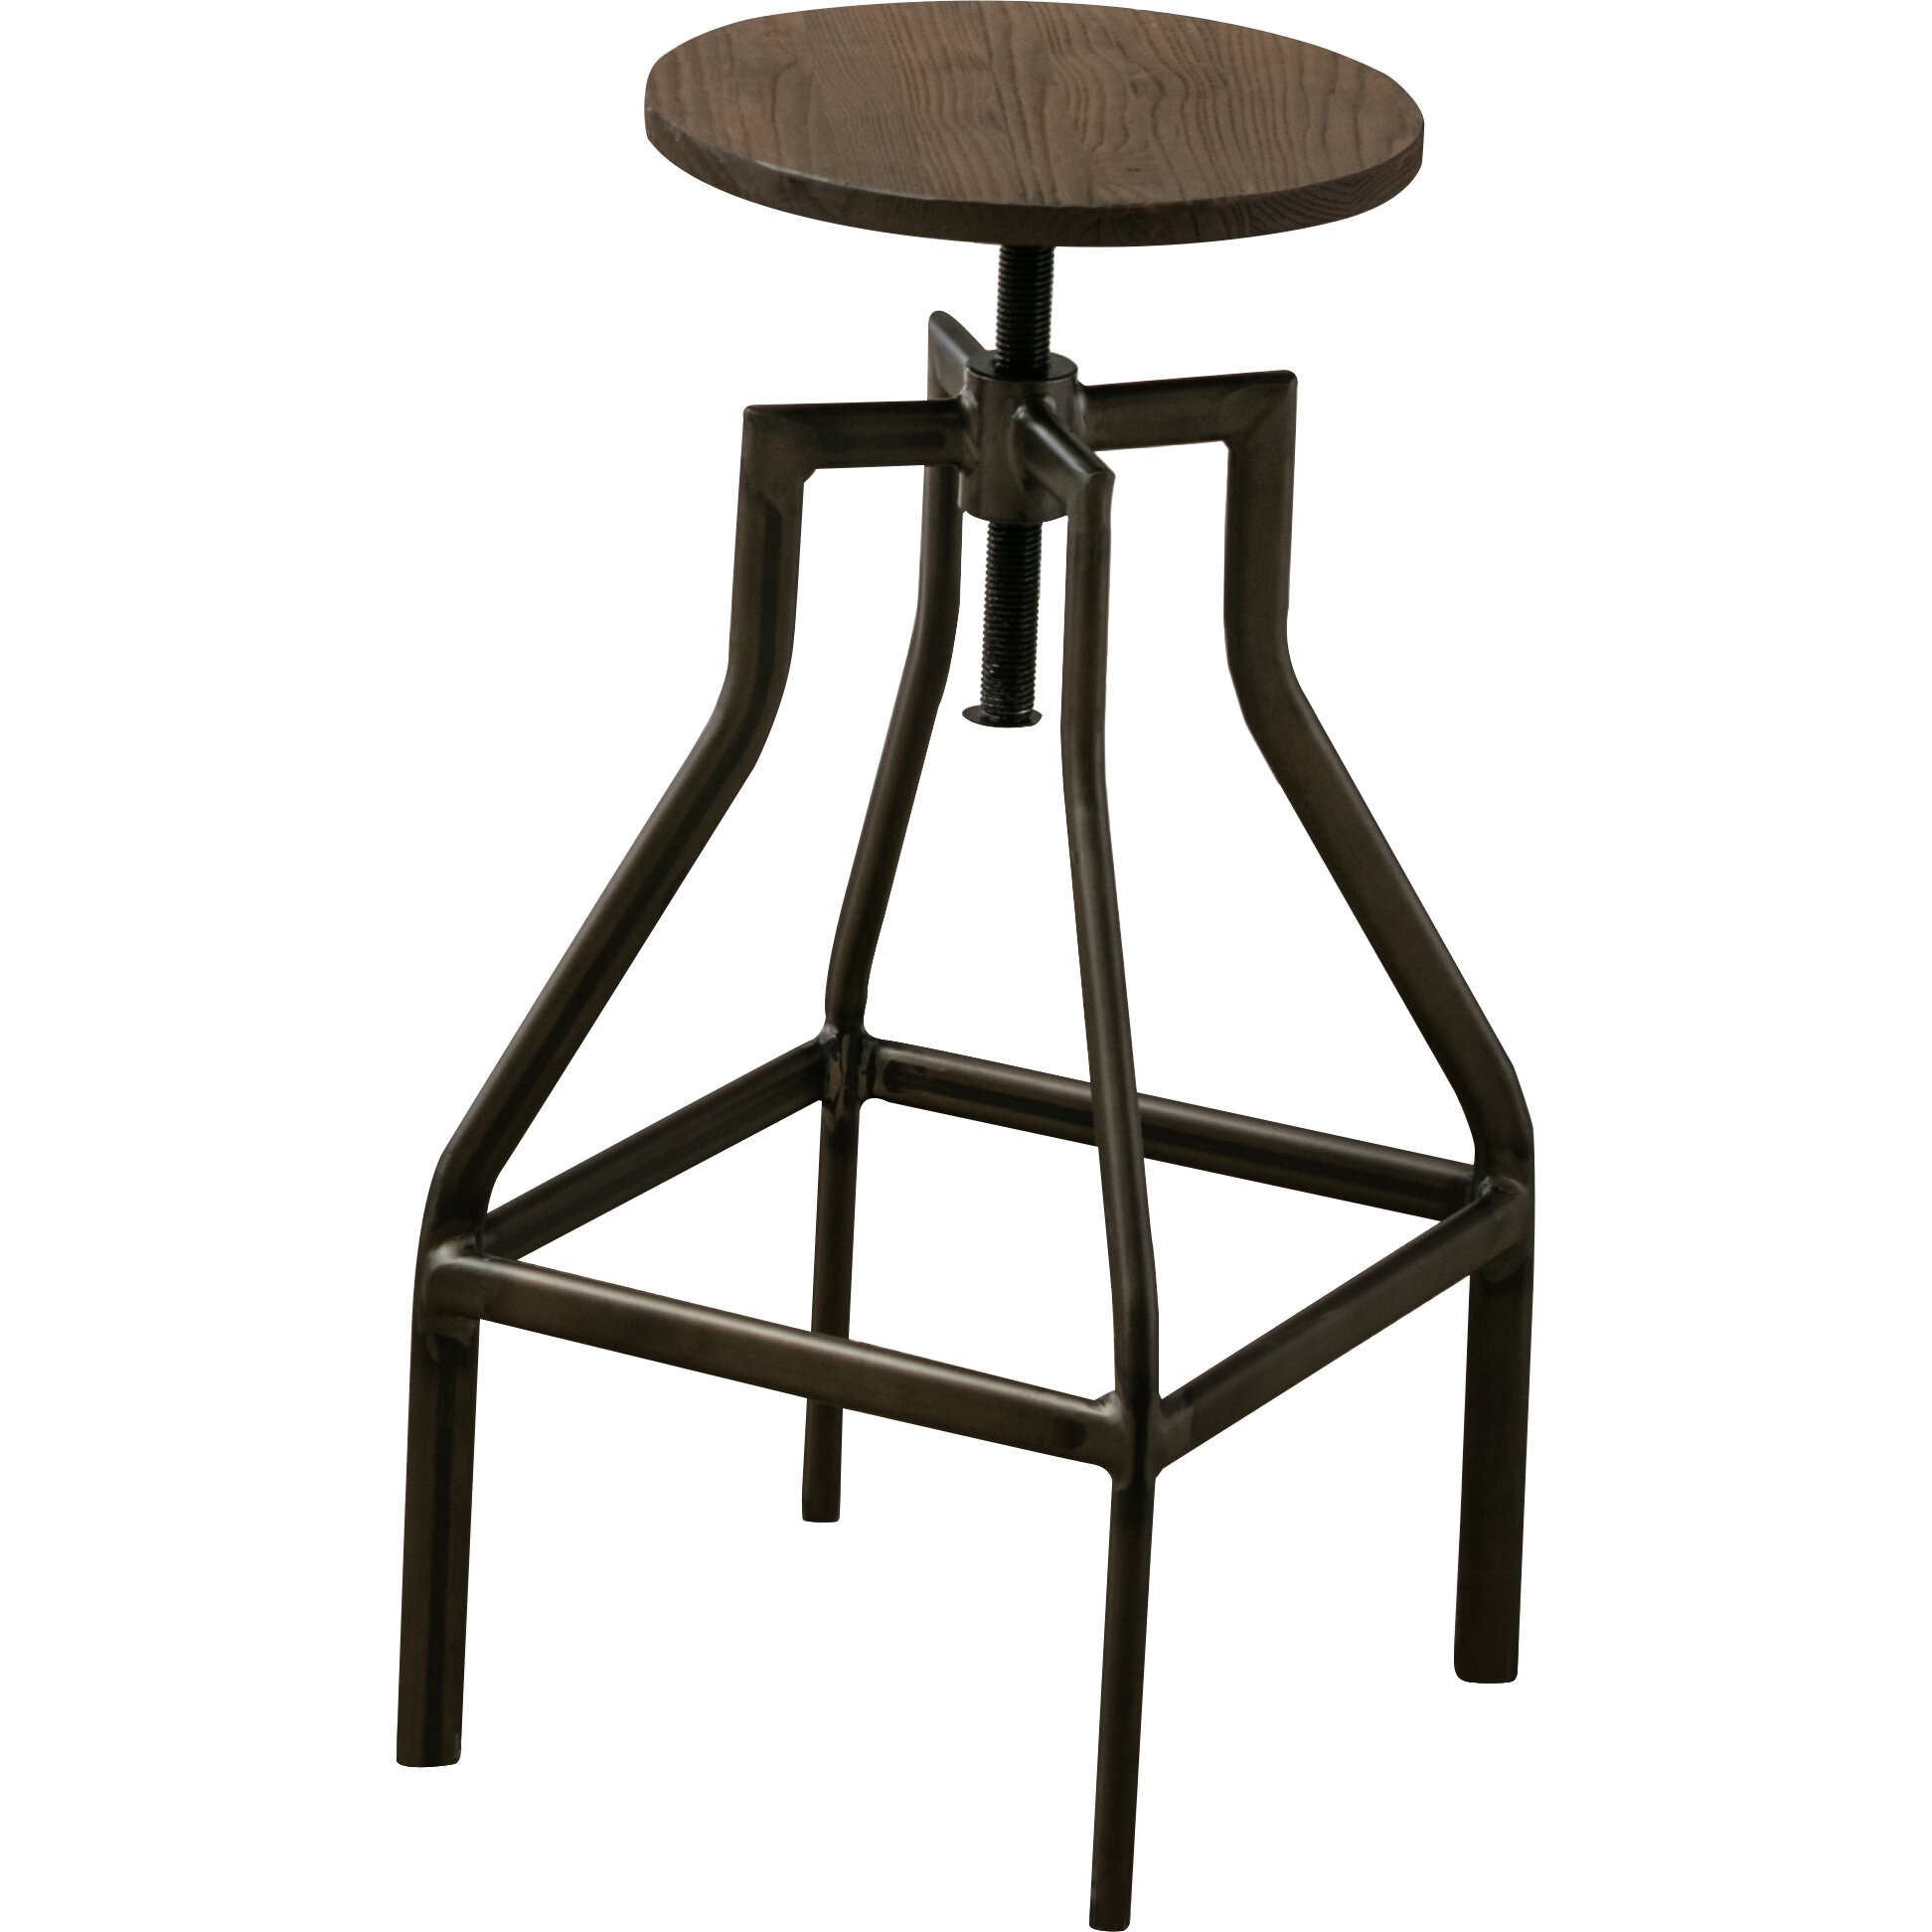 French Industrial Farmhouse Adjustable Height Swivel  : FrenchIndustrialFarmhouseAdjustableHeightSwivelCounterBarStool from www.jossandmain.com size 1944 x 1944 jpeg 146kB